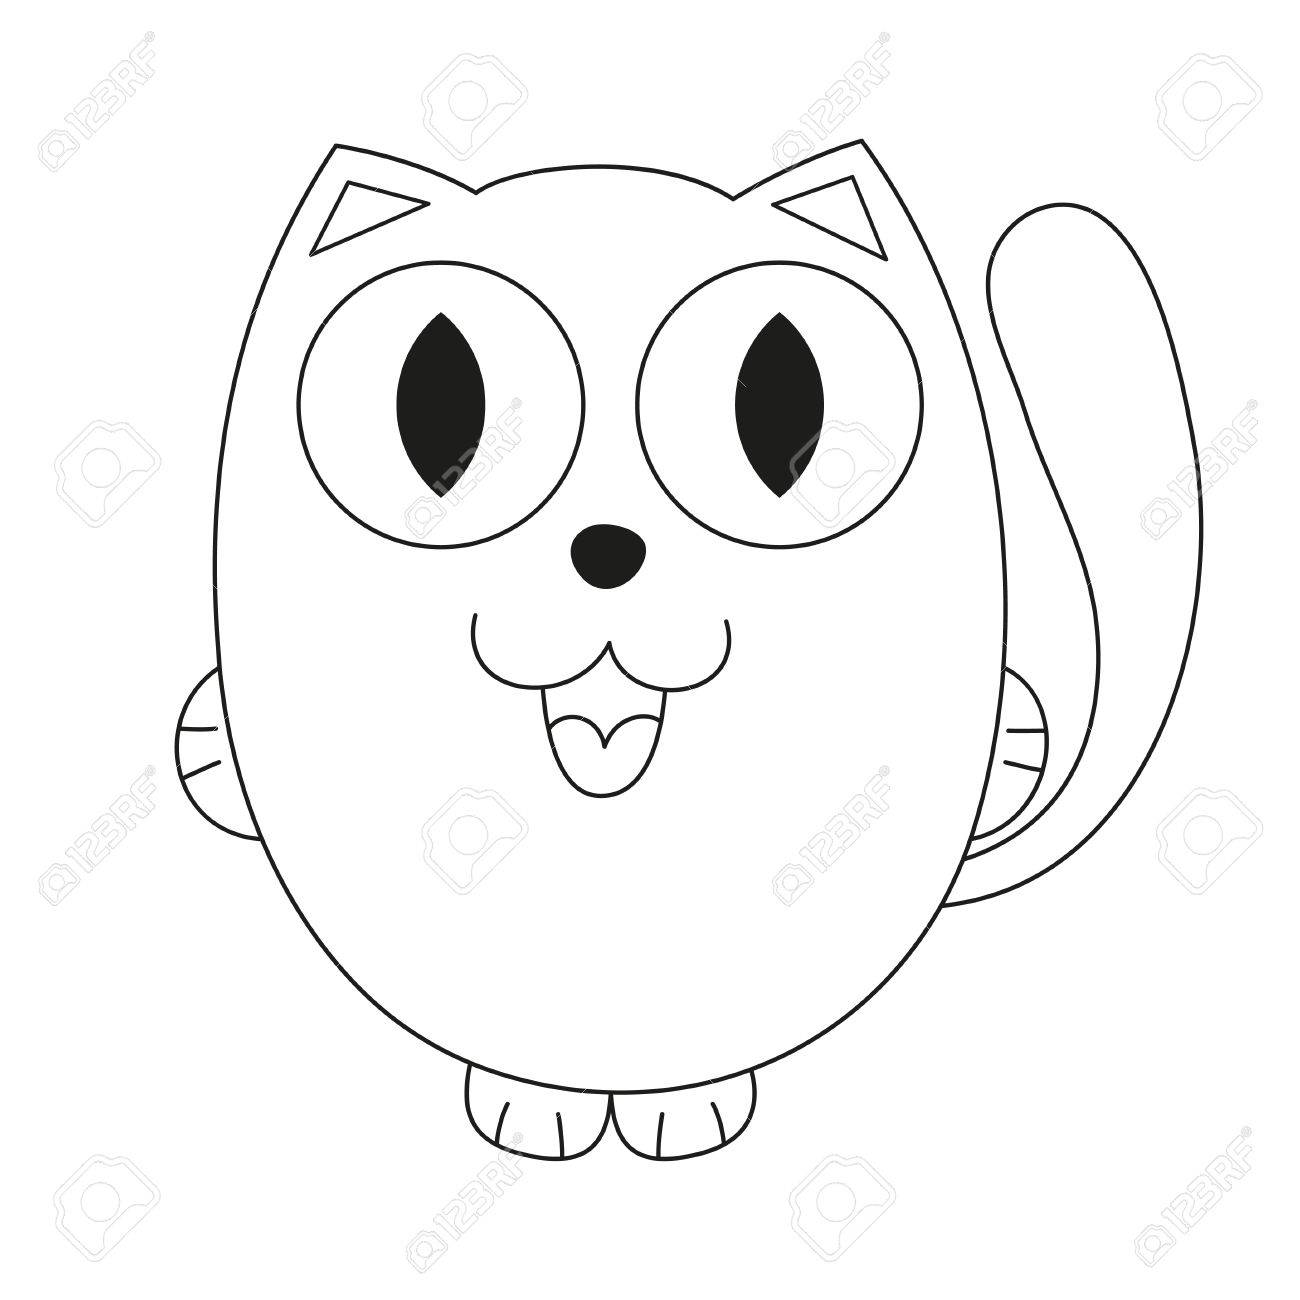 Incredible Kitten Coloring Book Image Ideas Free Cat Pages Rainbow ... | 1300x1300